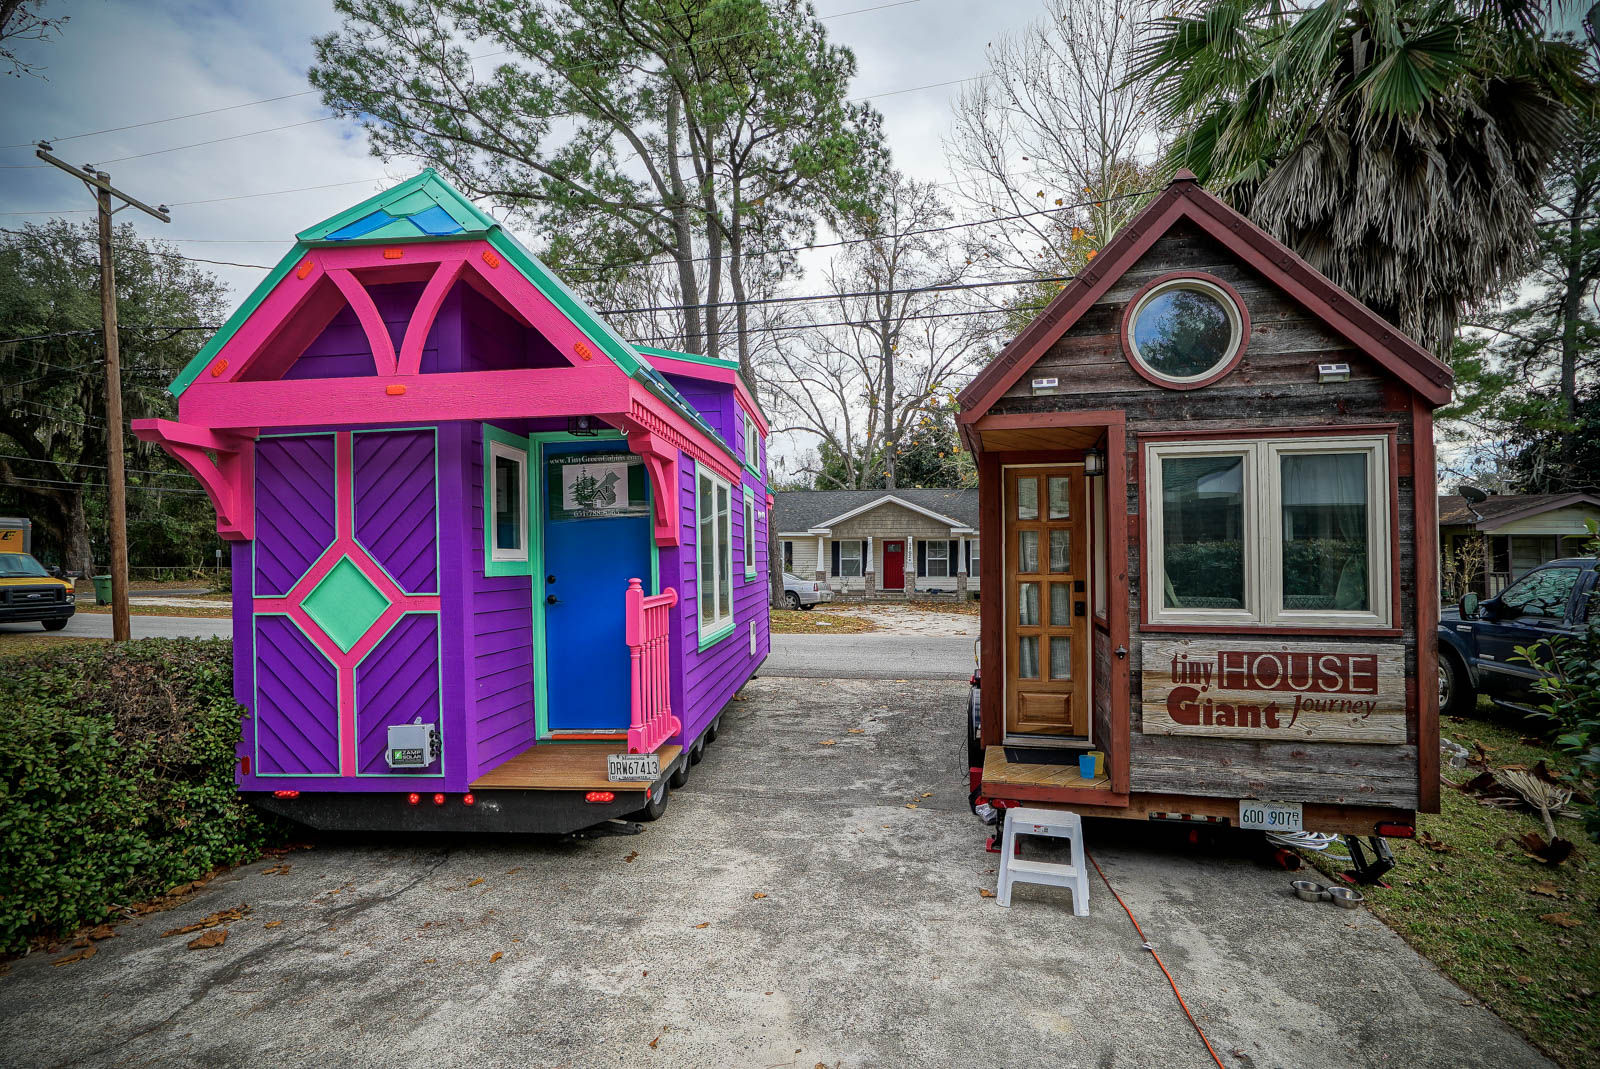 thgj and the ravenlore.jpg - Firefighters Designed Tiny, Colorful House That Looks Like It's From A Fairytale